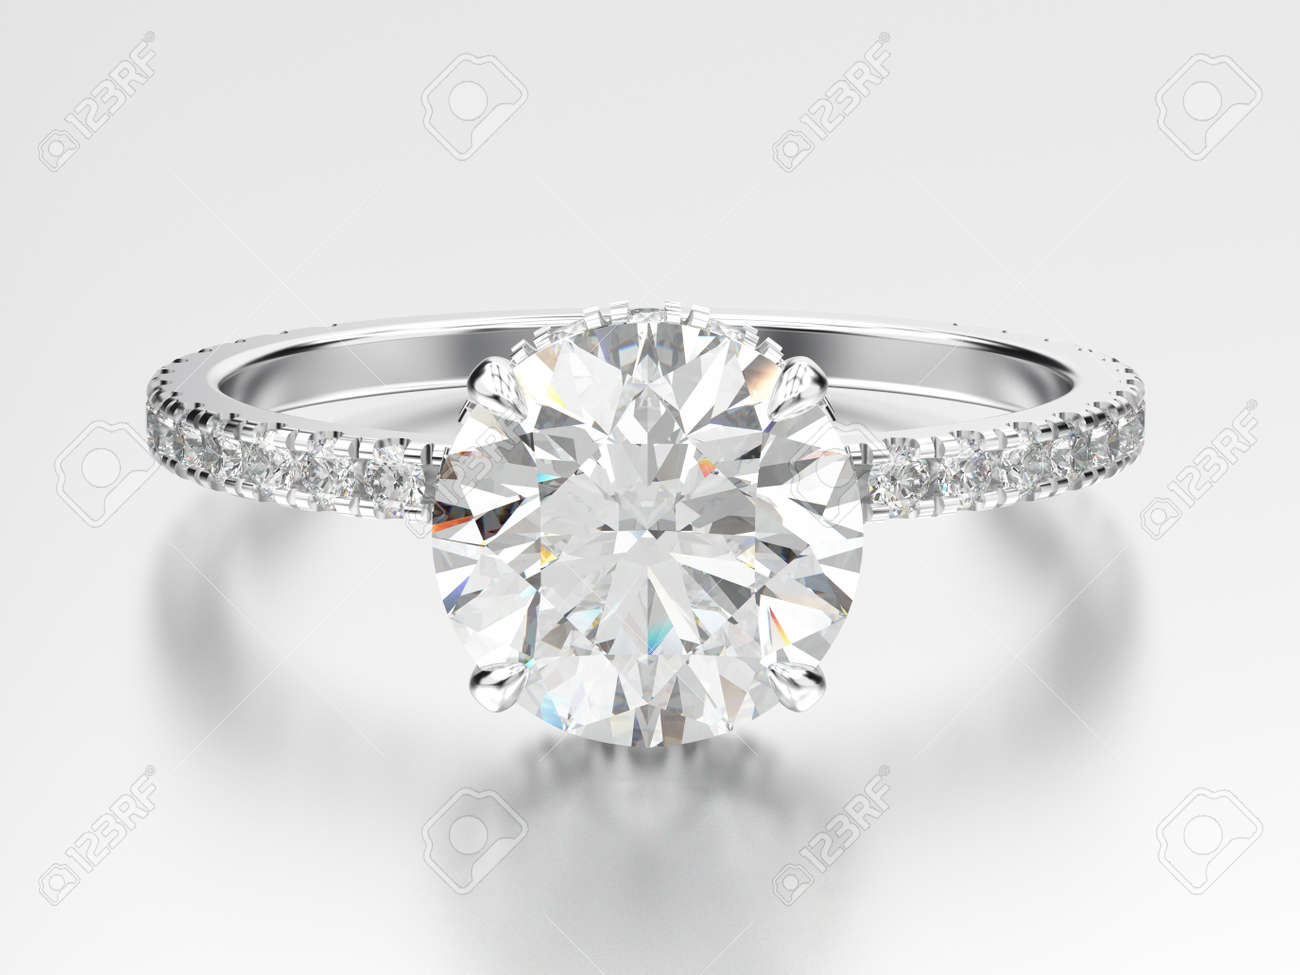 solitaire classic engagement traditional gold in diamond ring rings white prong setting